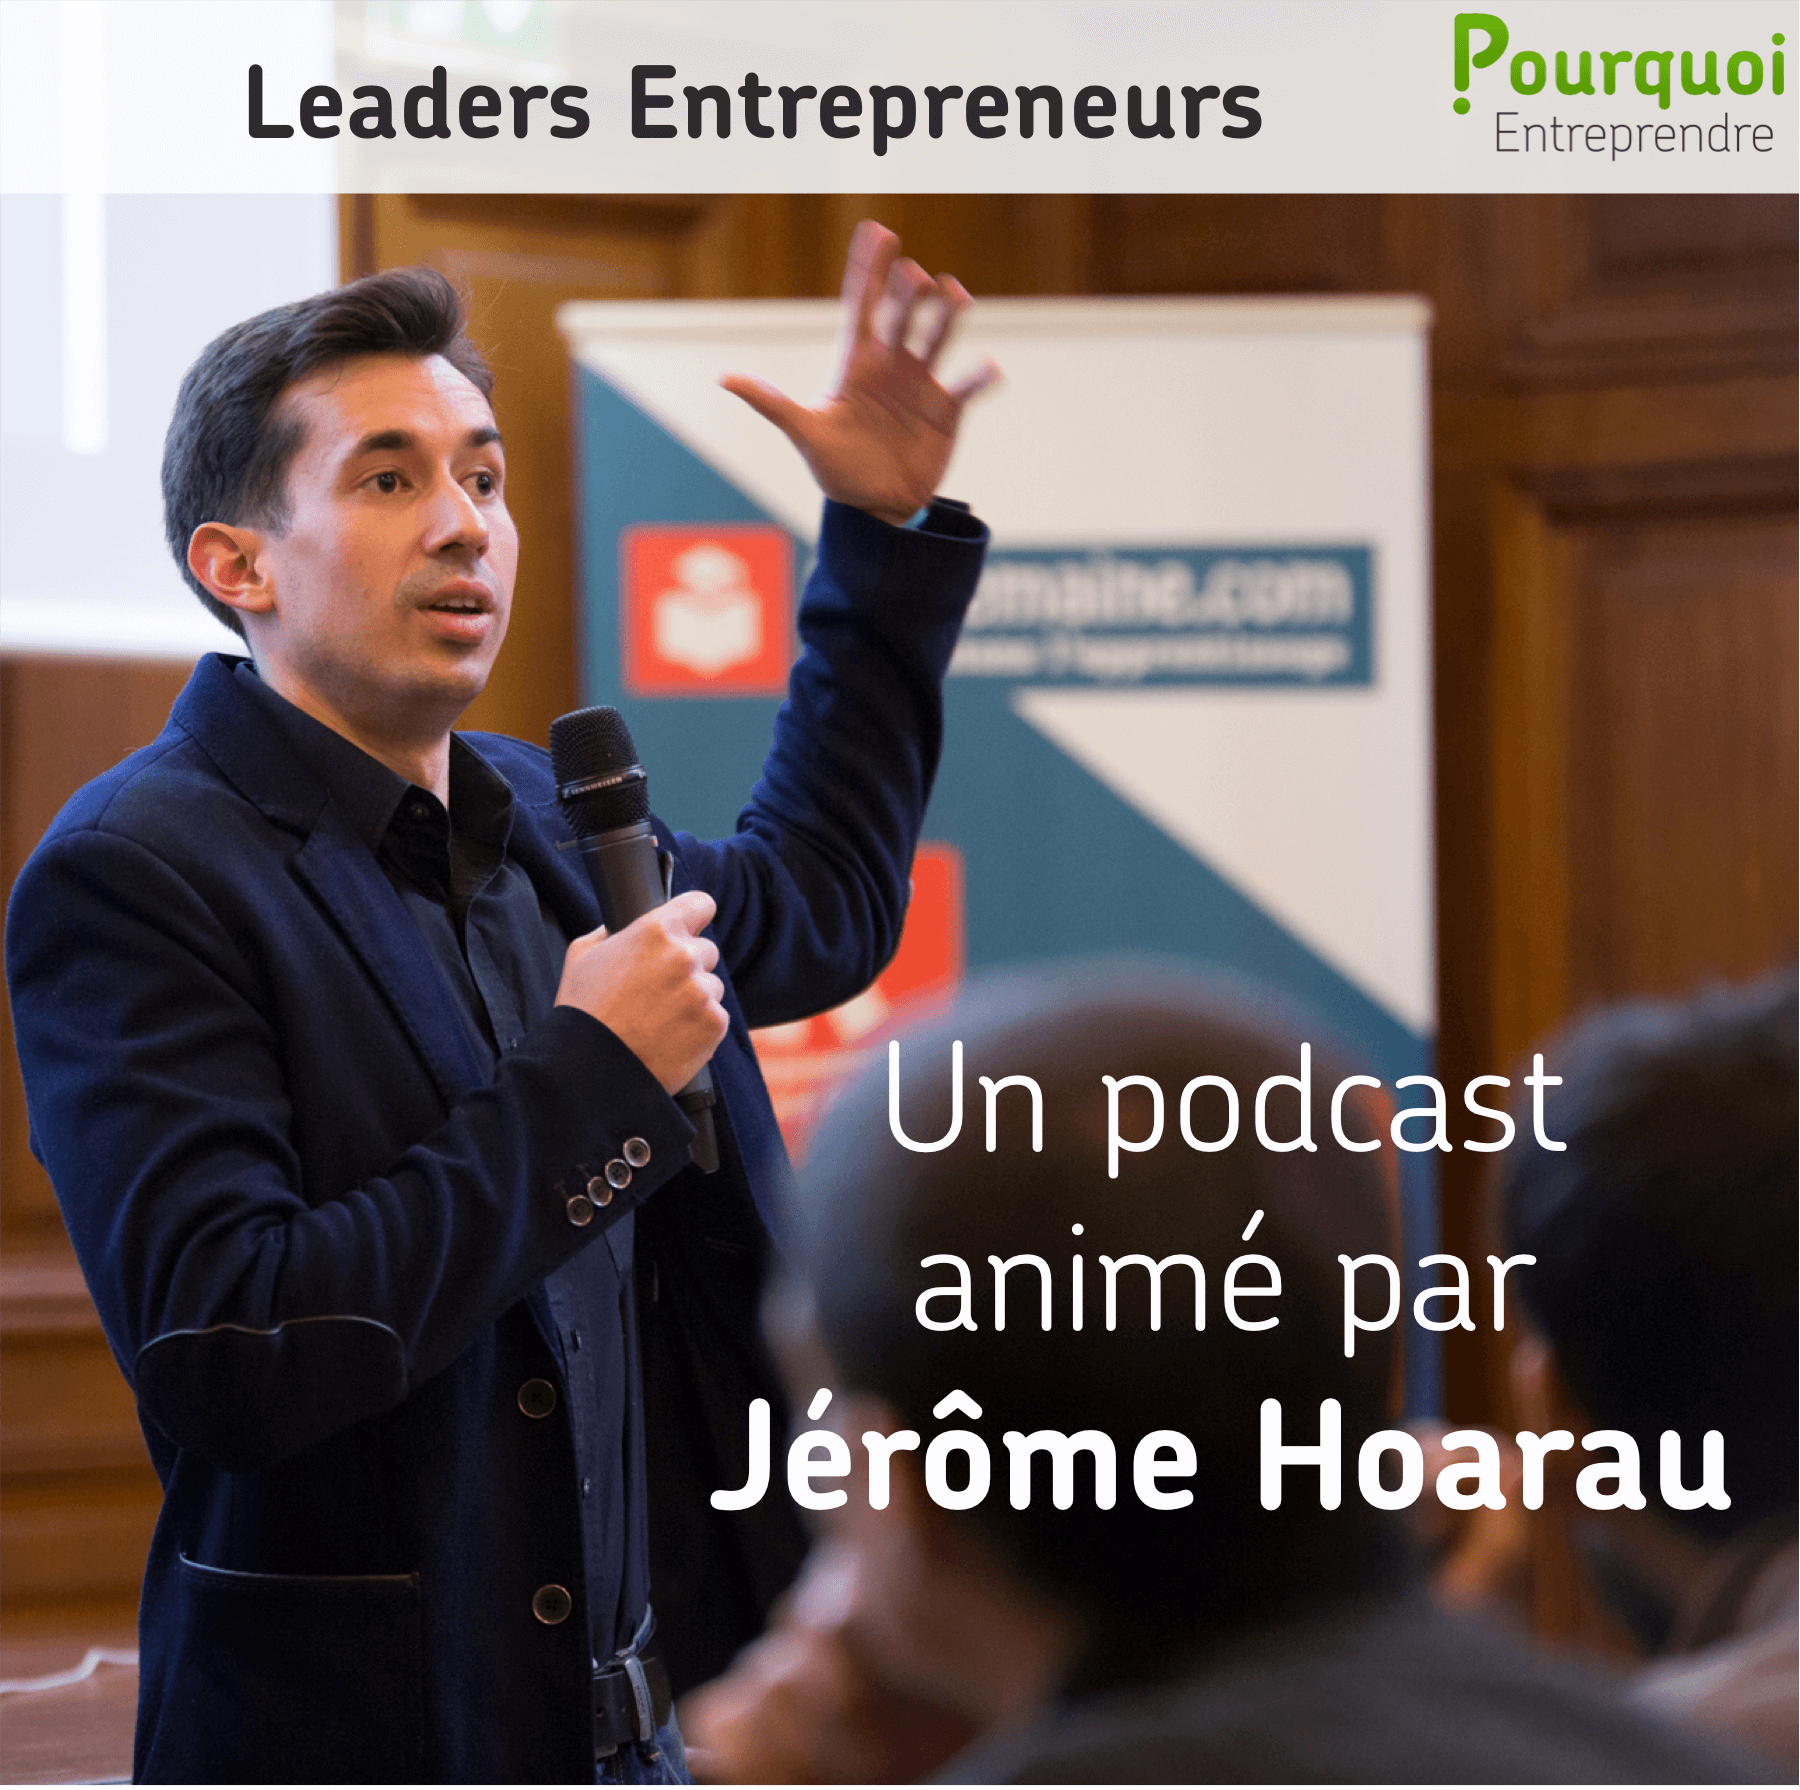 Podcast Leaders Entrepreneurs - Jérôme Hoarau